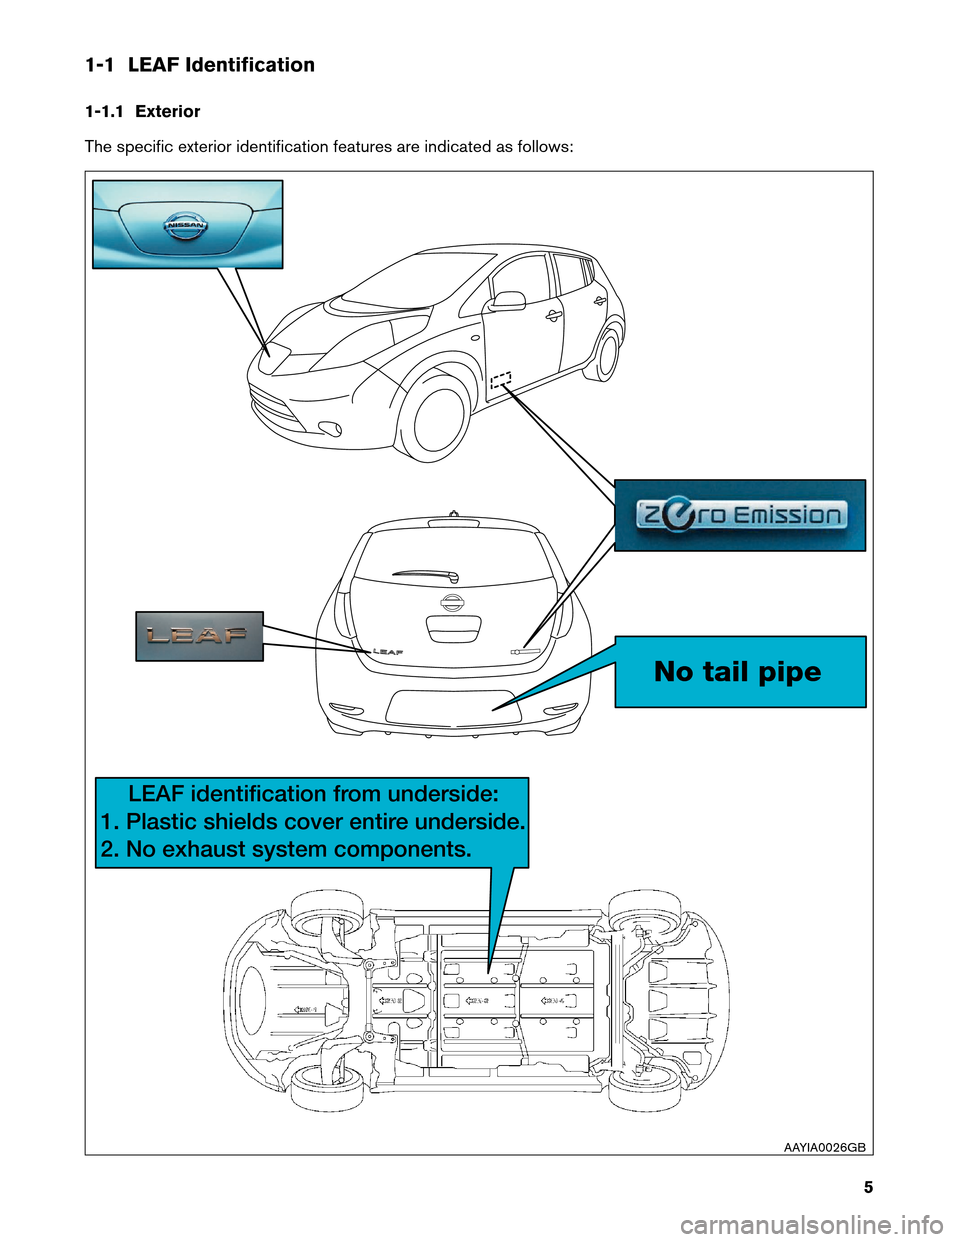 NISSAN LEAF 2013 1.G First Responders Guide, Page 5